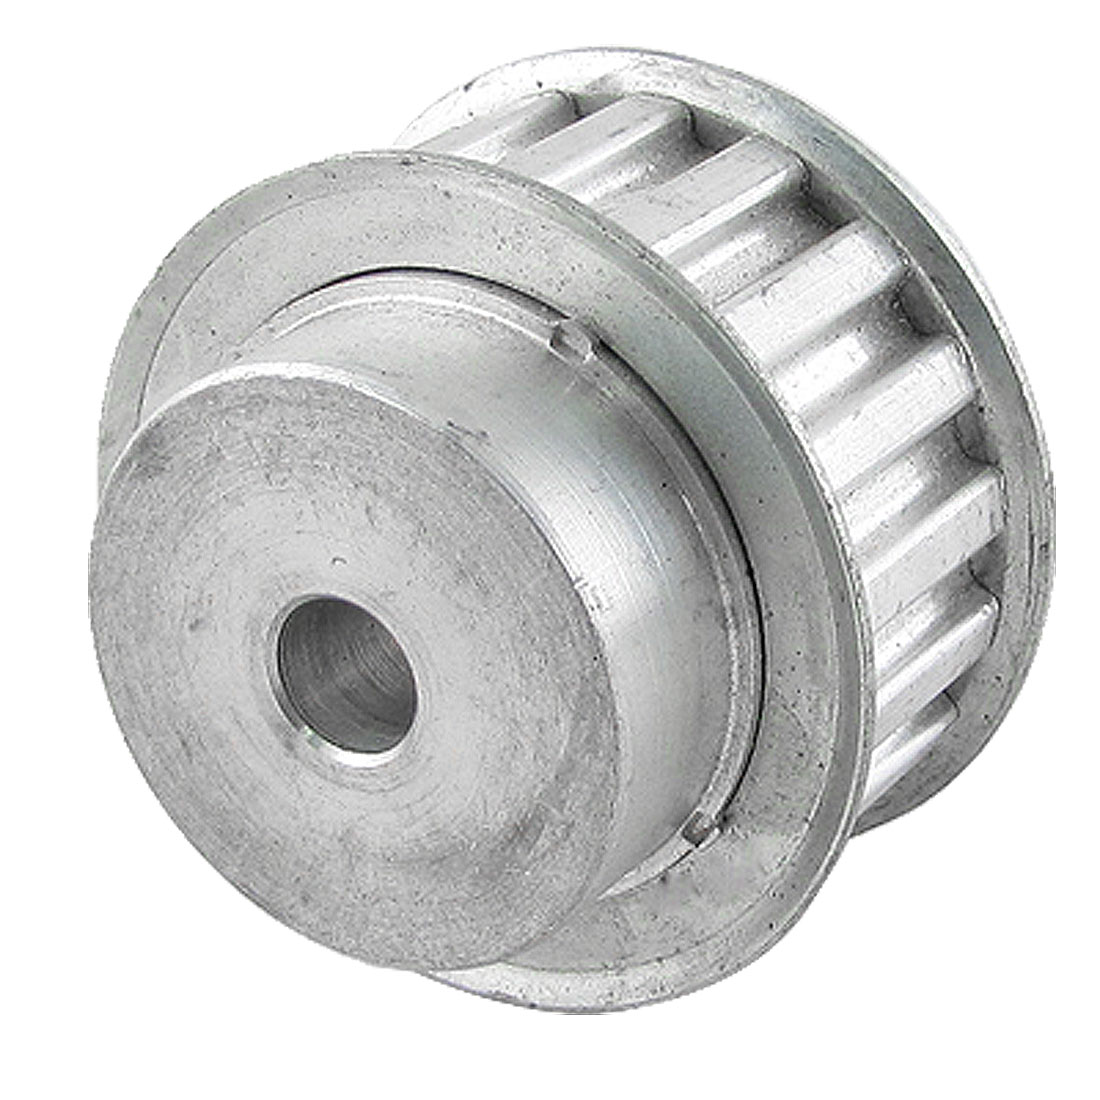 "Synchronous L Type 0.84"" Width Groove Belt 3/8"" Pitch 18 Teeth Timing Pulley"